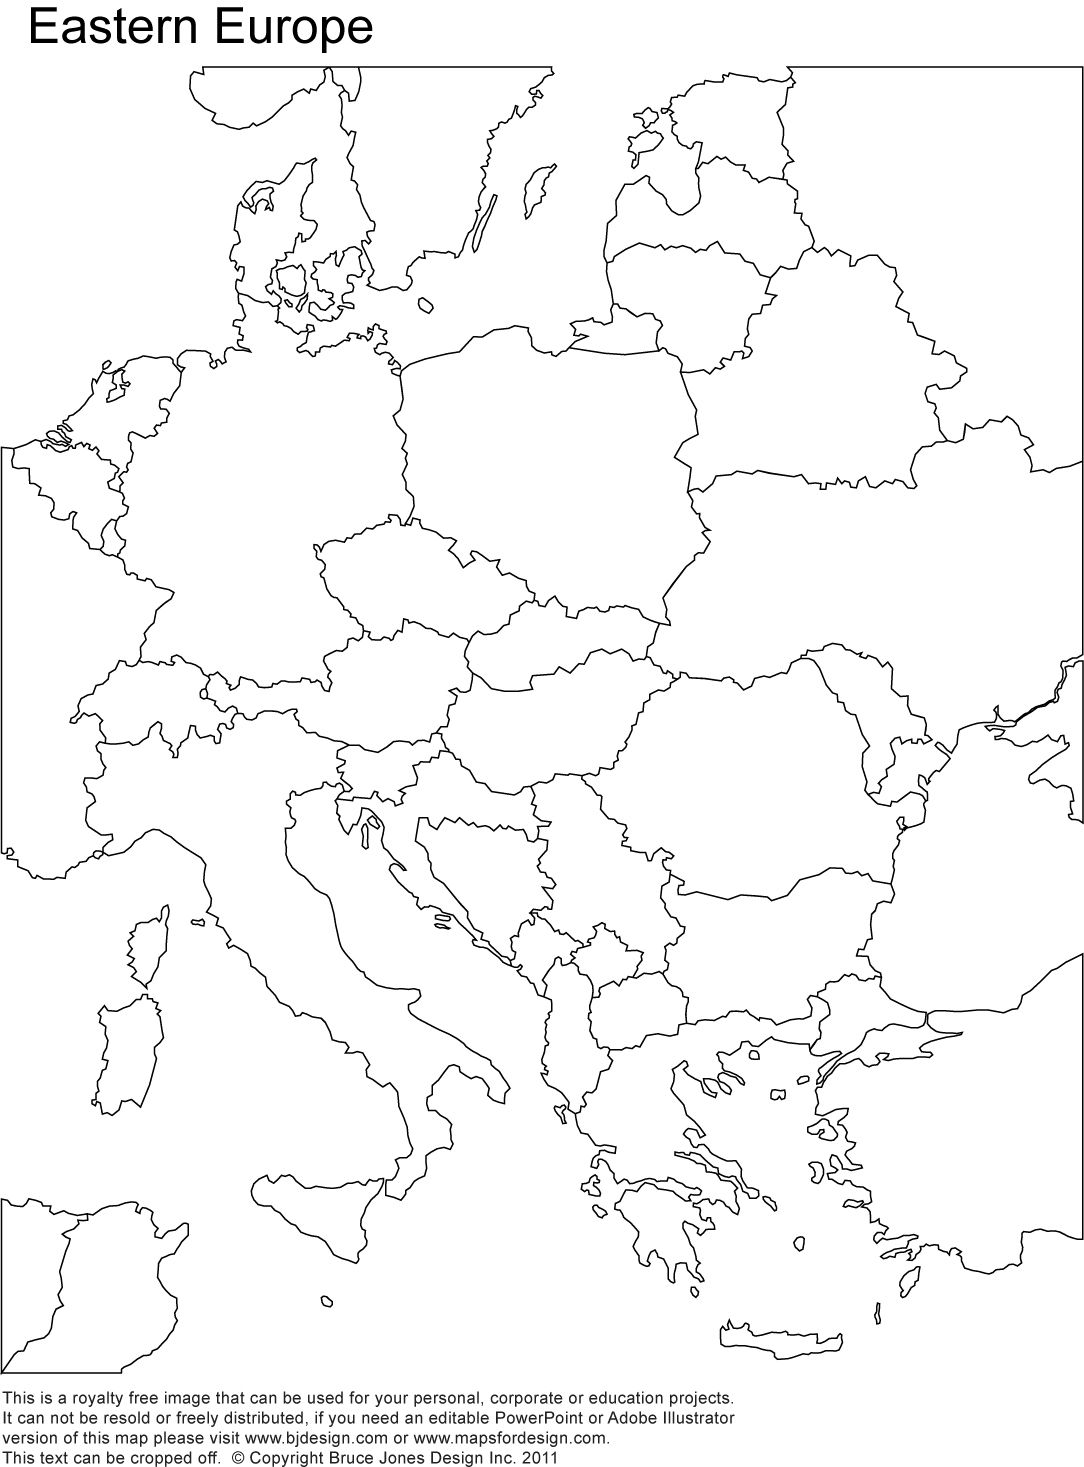 Eastern Europe Printable Blank map royalty free country borders